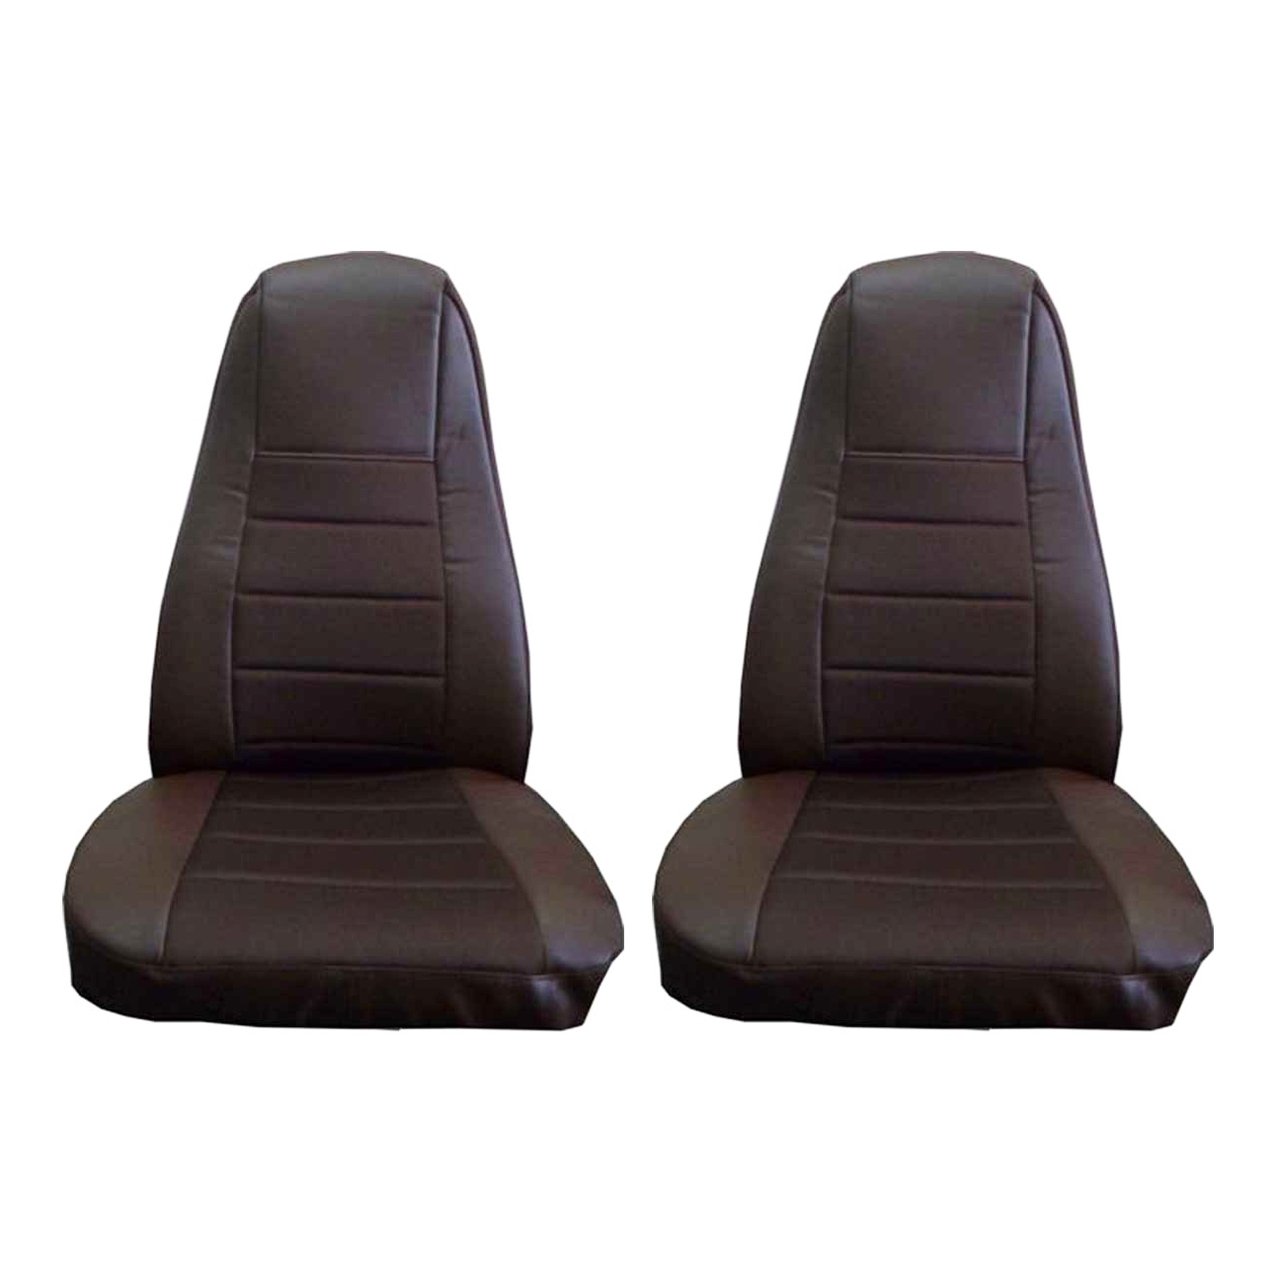 Brown Faux Leather Seat Covers with Pocket, Pair